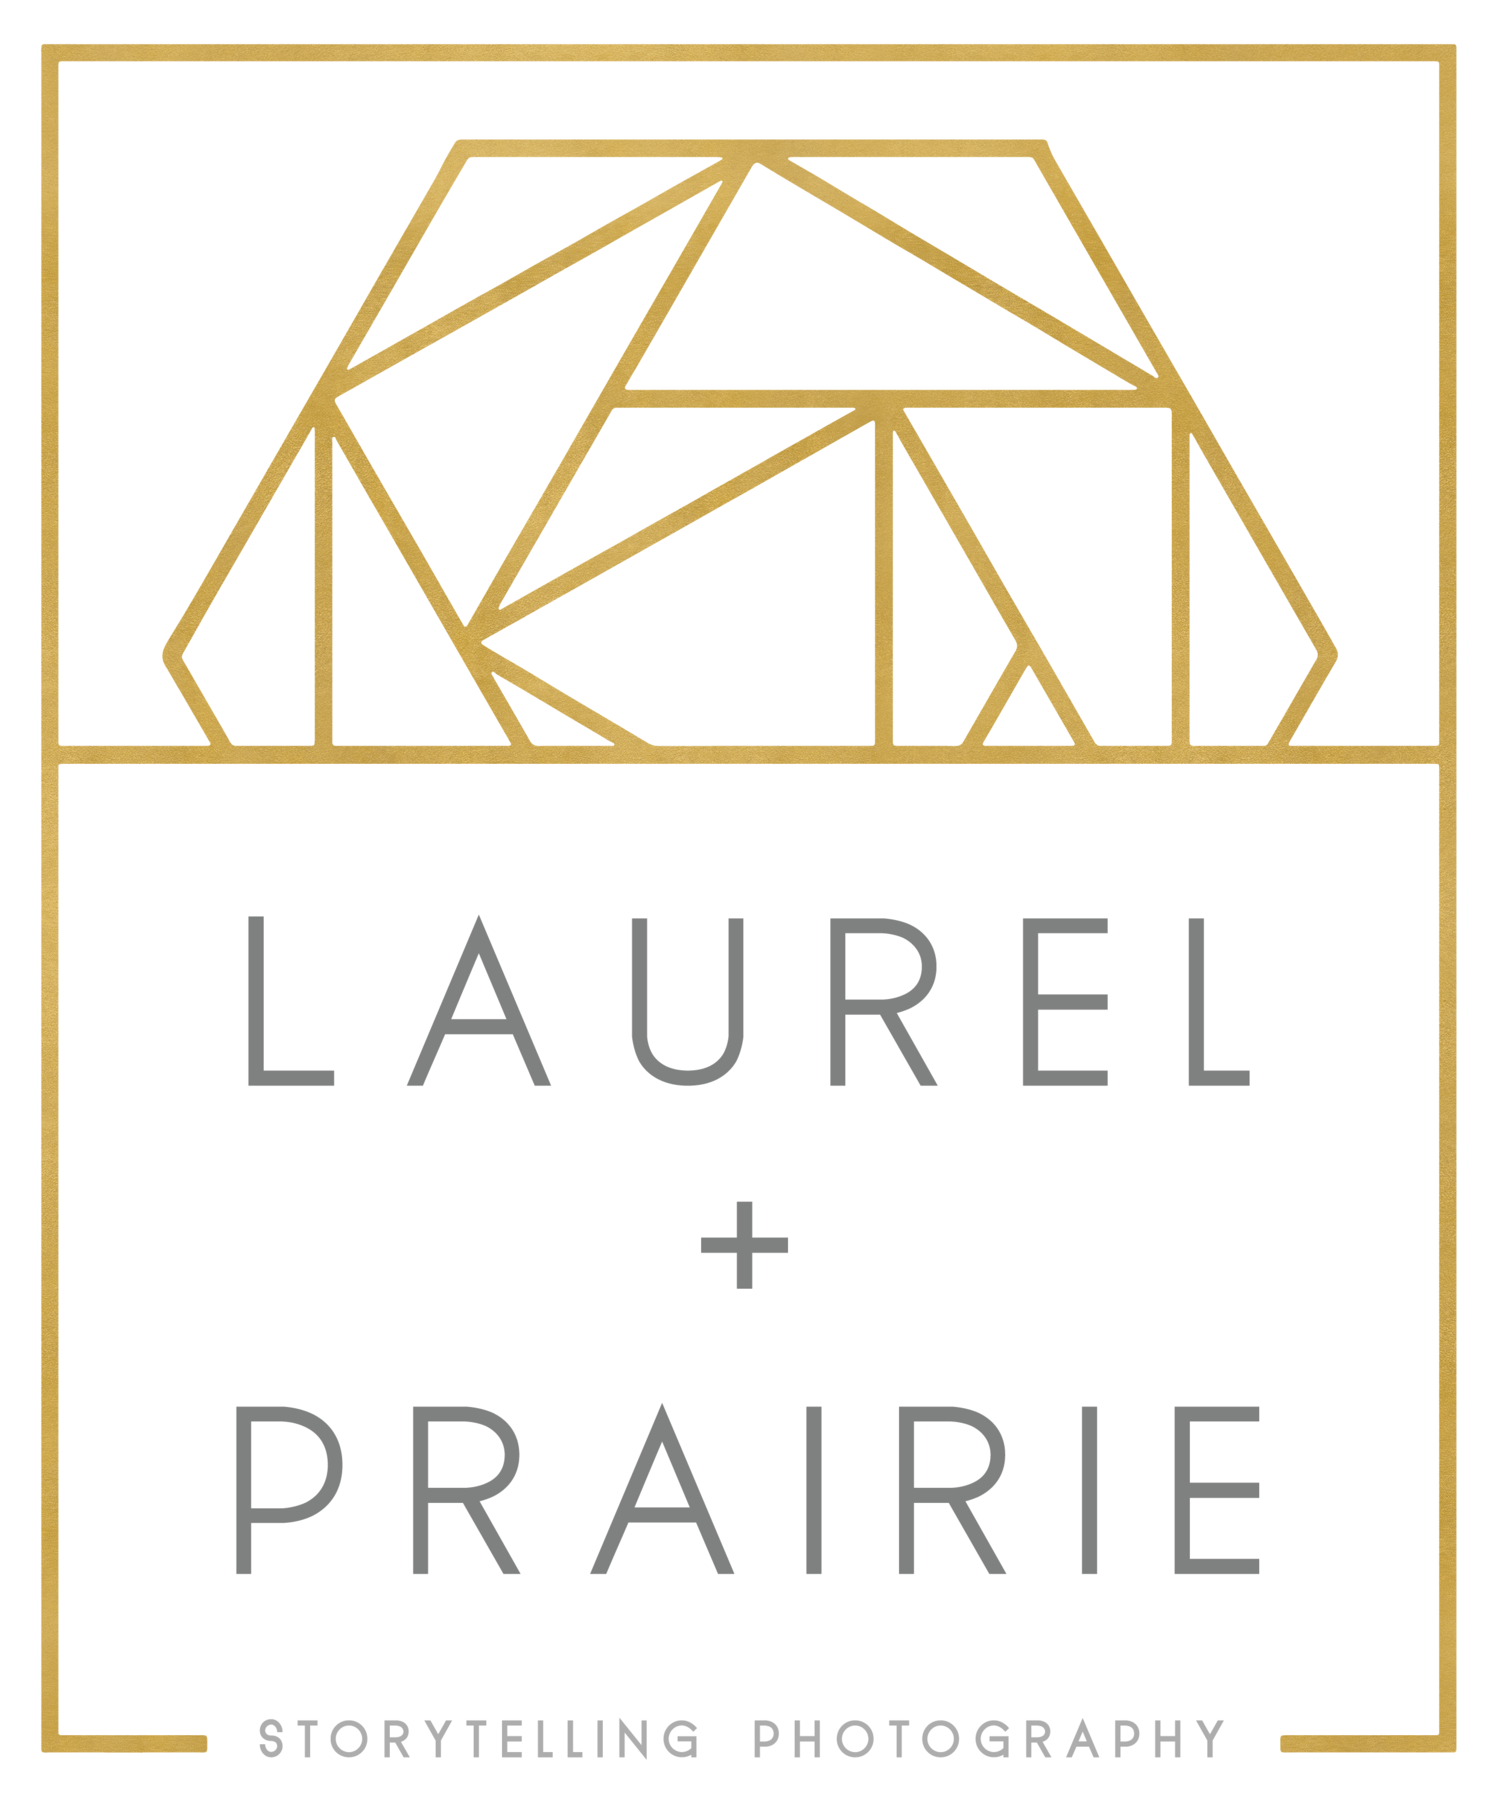 Laurel + Prairie